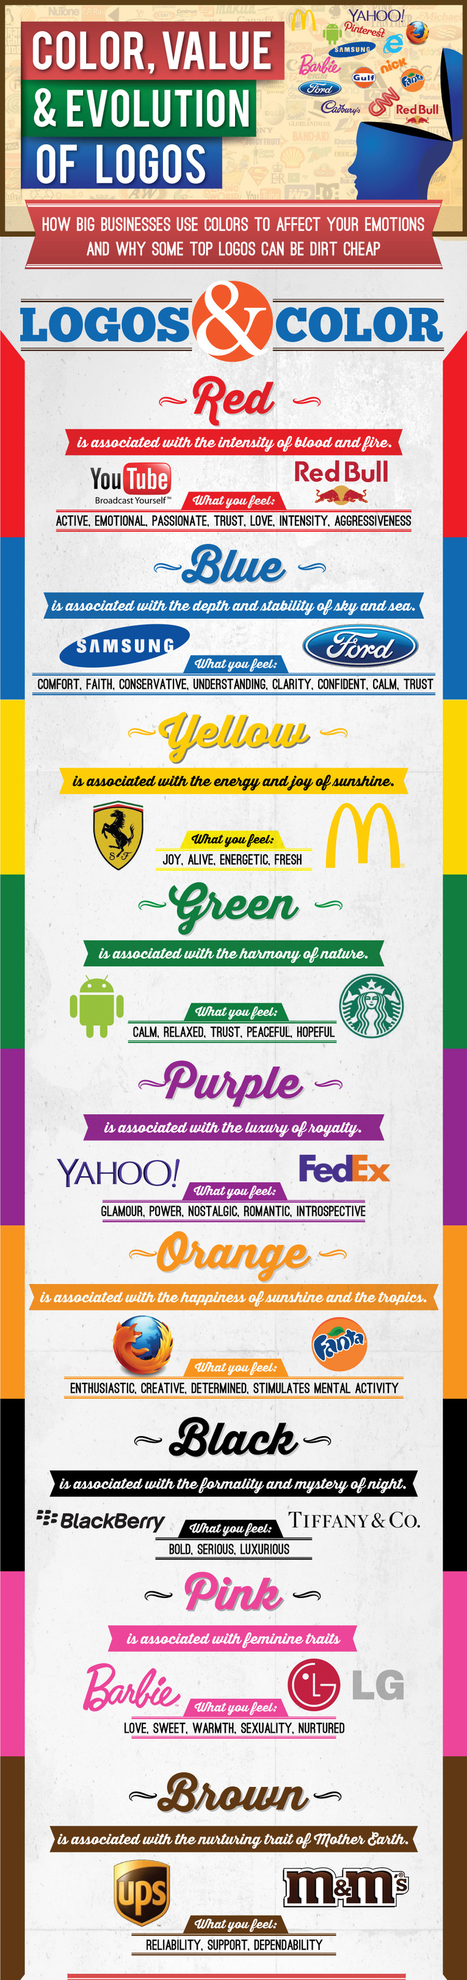 Choosing The Right Color For Your Small Business Logo - Marketing Mojo for Small Business (Infographic) | ESP Business English | Scoop.it